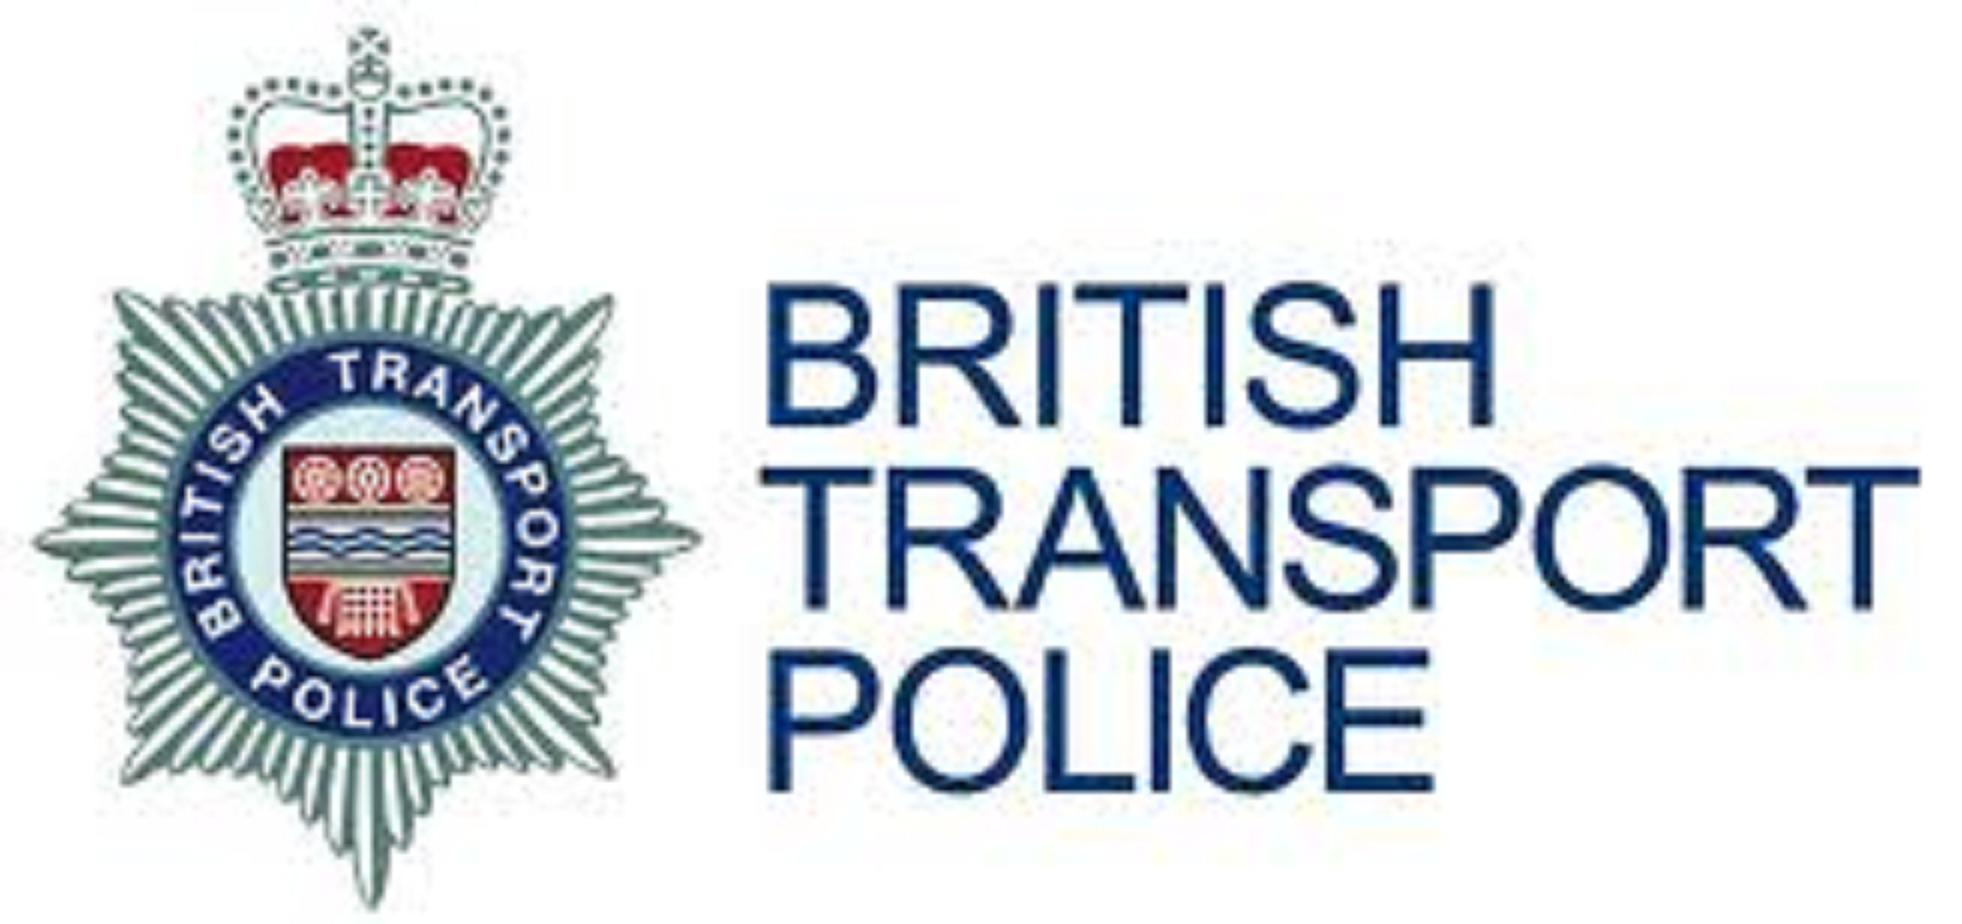 Contact British Transport Police on 0800 40 50 40